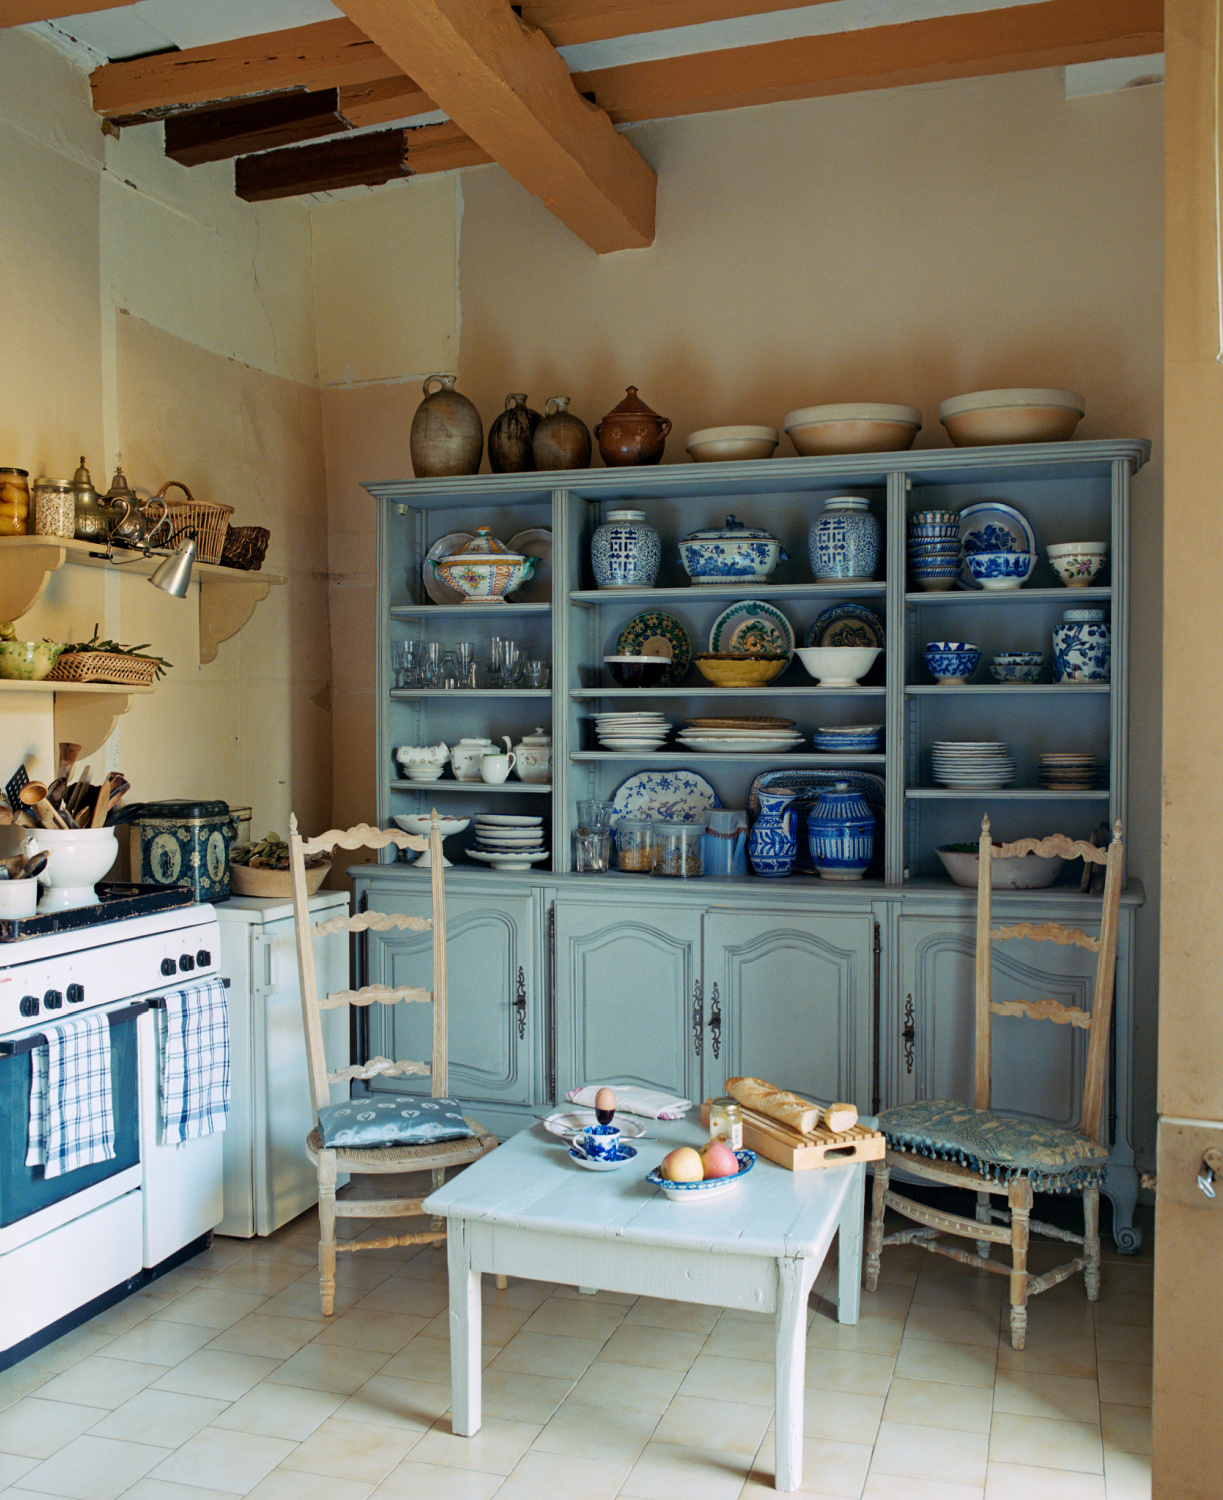 A pair of high-backed kitchen chairs in front of the  large blue dresser in the kitchen displaying a collection of ceramics from North Africa, Andalucia, China and Holland. Featured in Shauna Varvel's PROVENCE STYLE. #interiordesign #frenchcountry #oldworldstyle